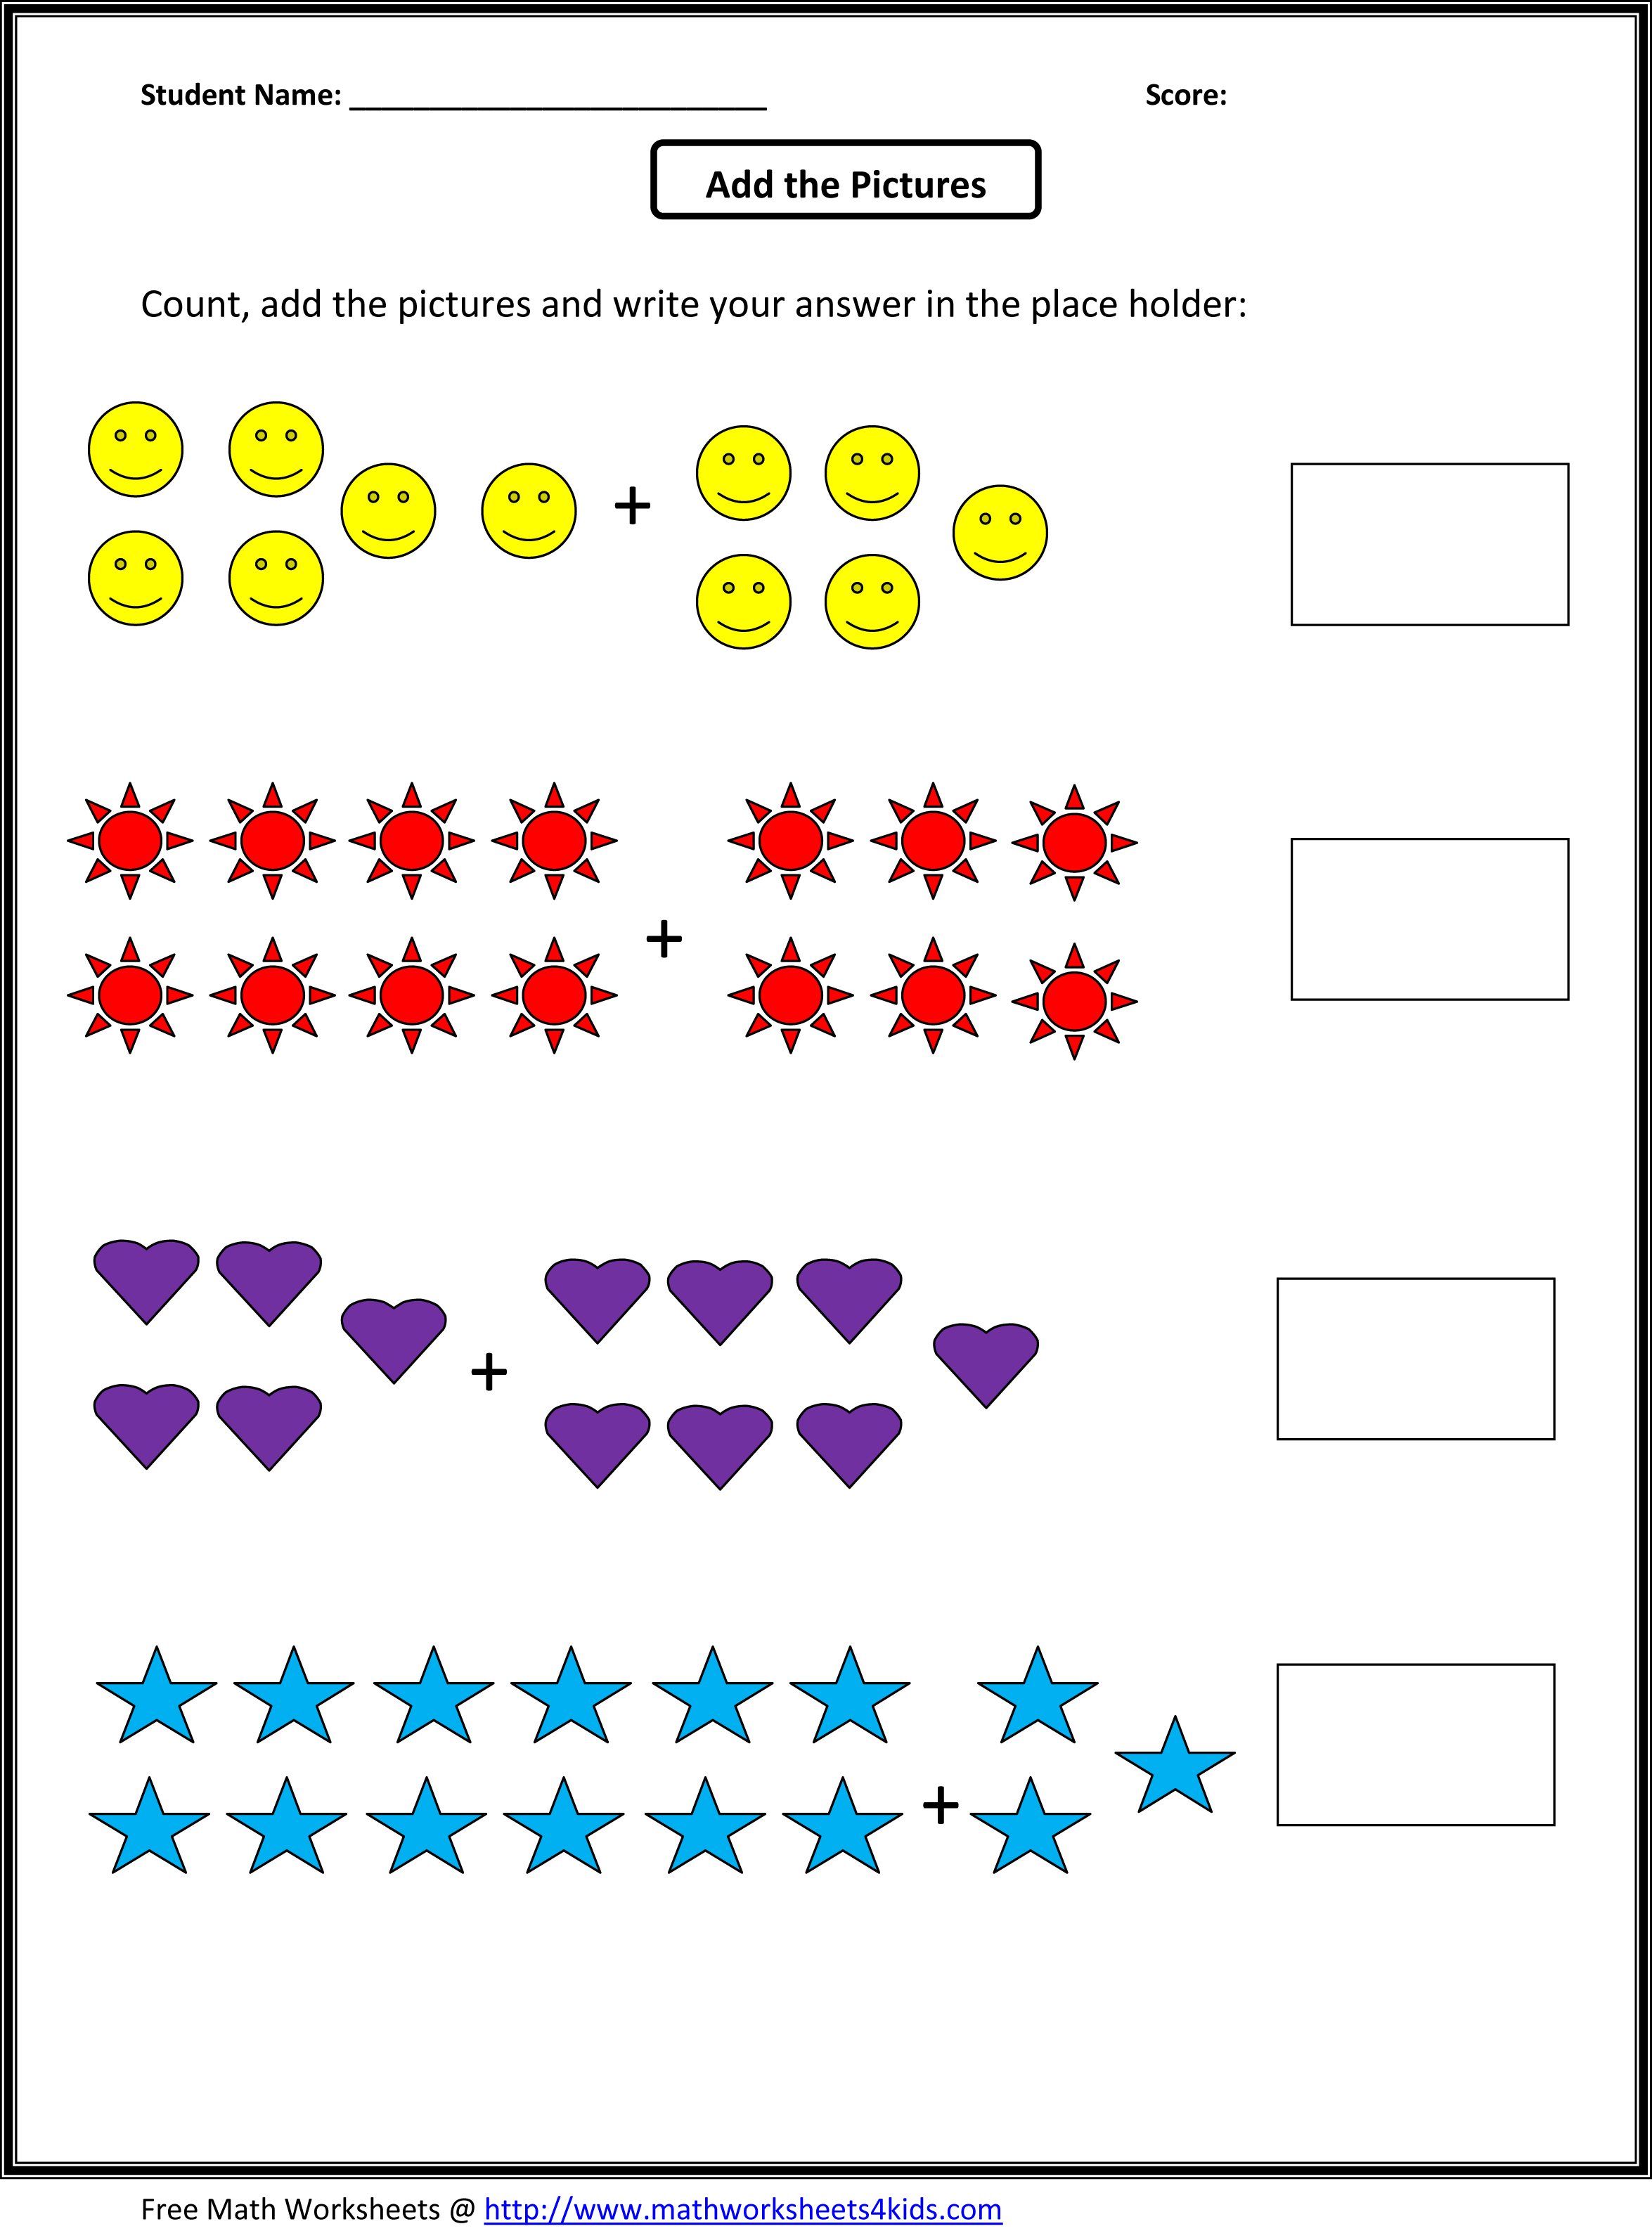 Worksheet Grade One Math fun math worksheets for grade 1 multiply numbers by to 10 first worksheets